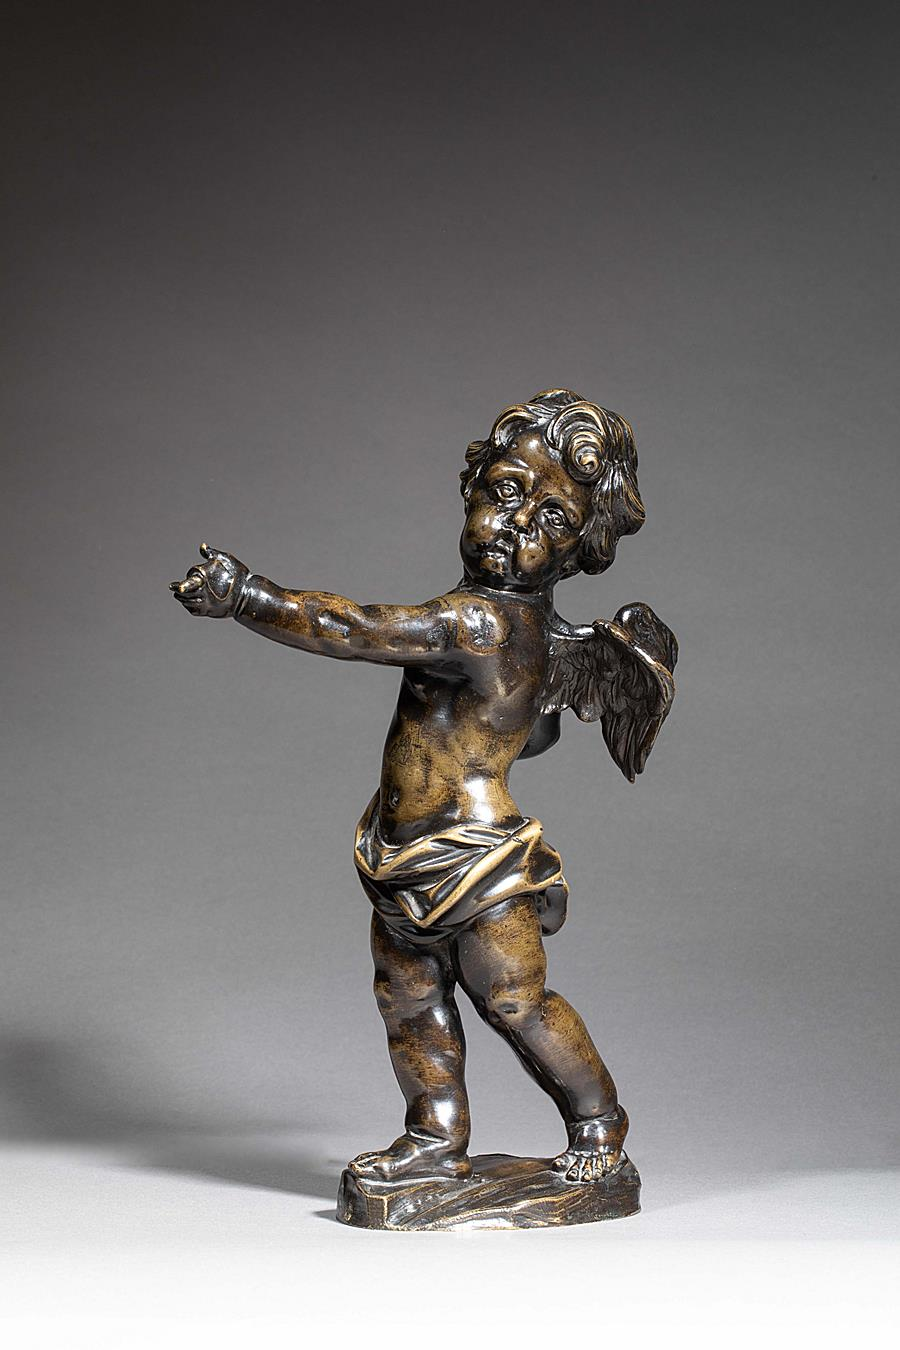 CIRCLE OF ROMBOUST VERHULST (1624-1698) - PUTTO HOLDING A PHYLACTERY